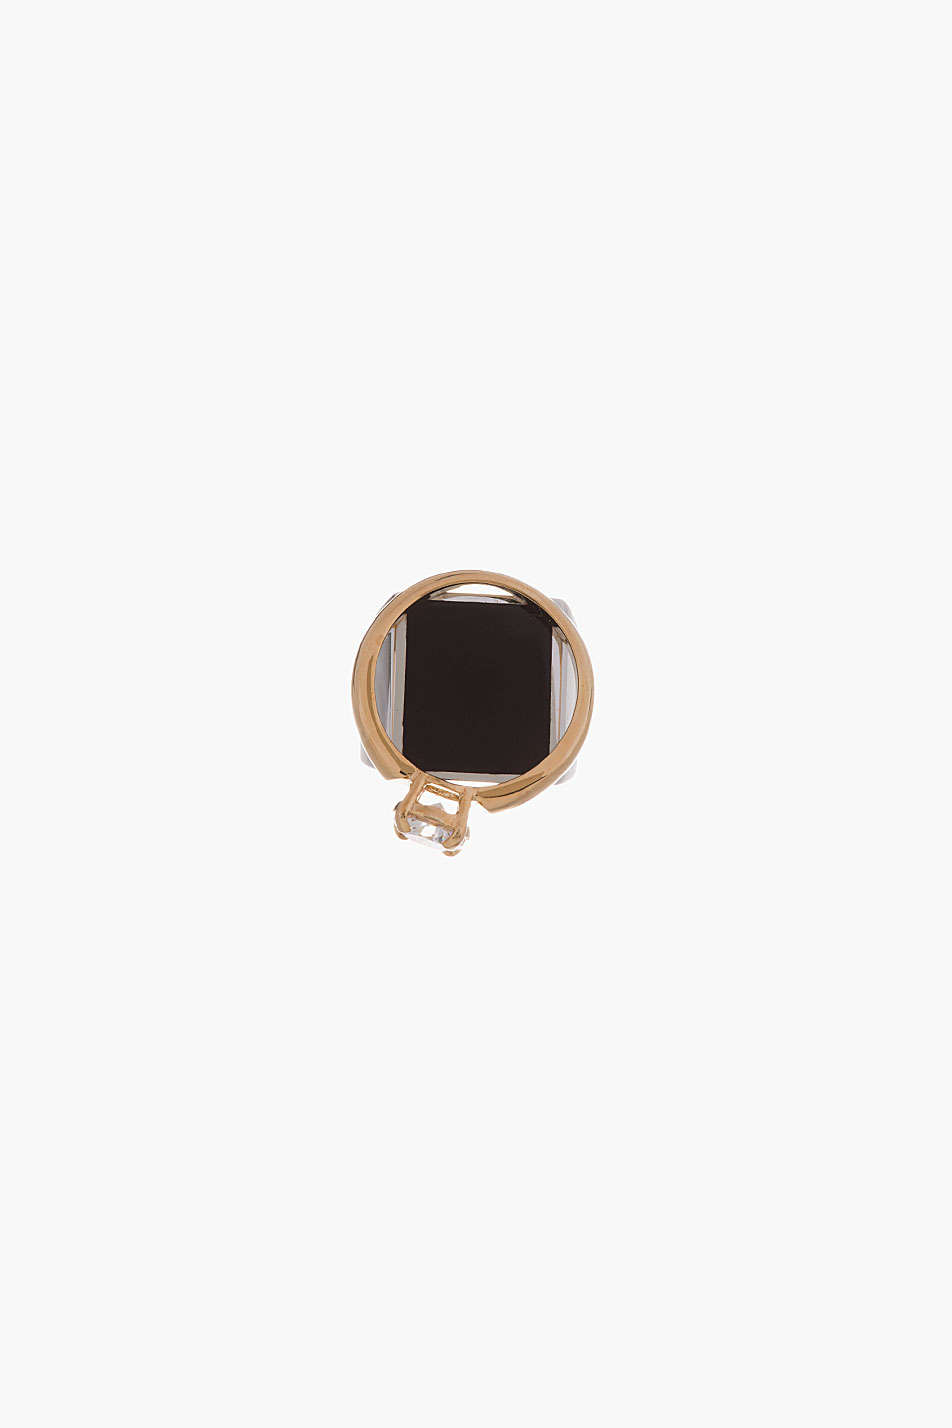 maison martin margiela gold and silver stacked ring. Black Bedroom Furniture Sets. Home Design Ideas